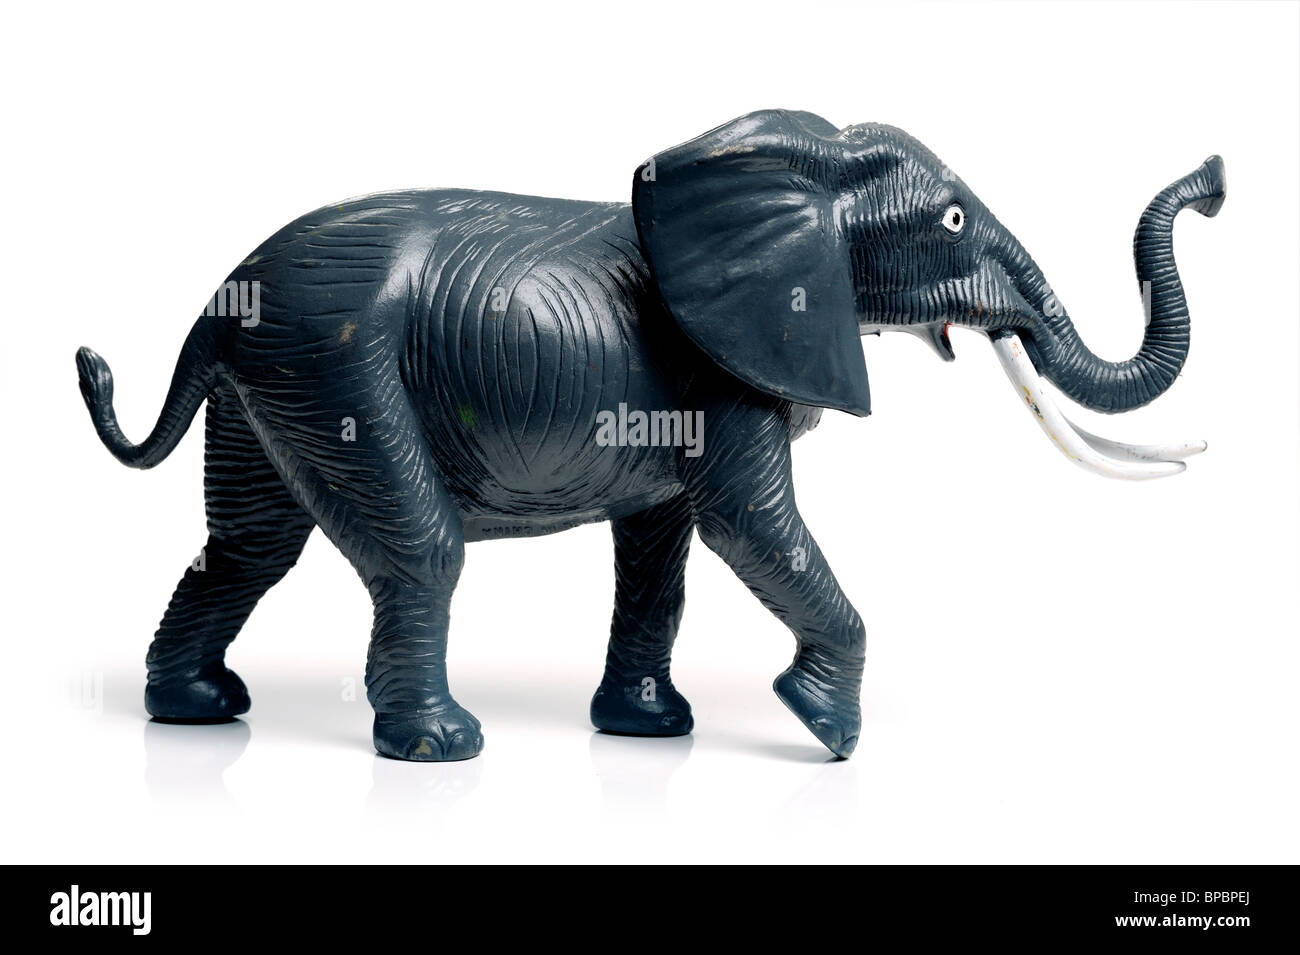 Toy plastic elephant - Stock Image